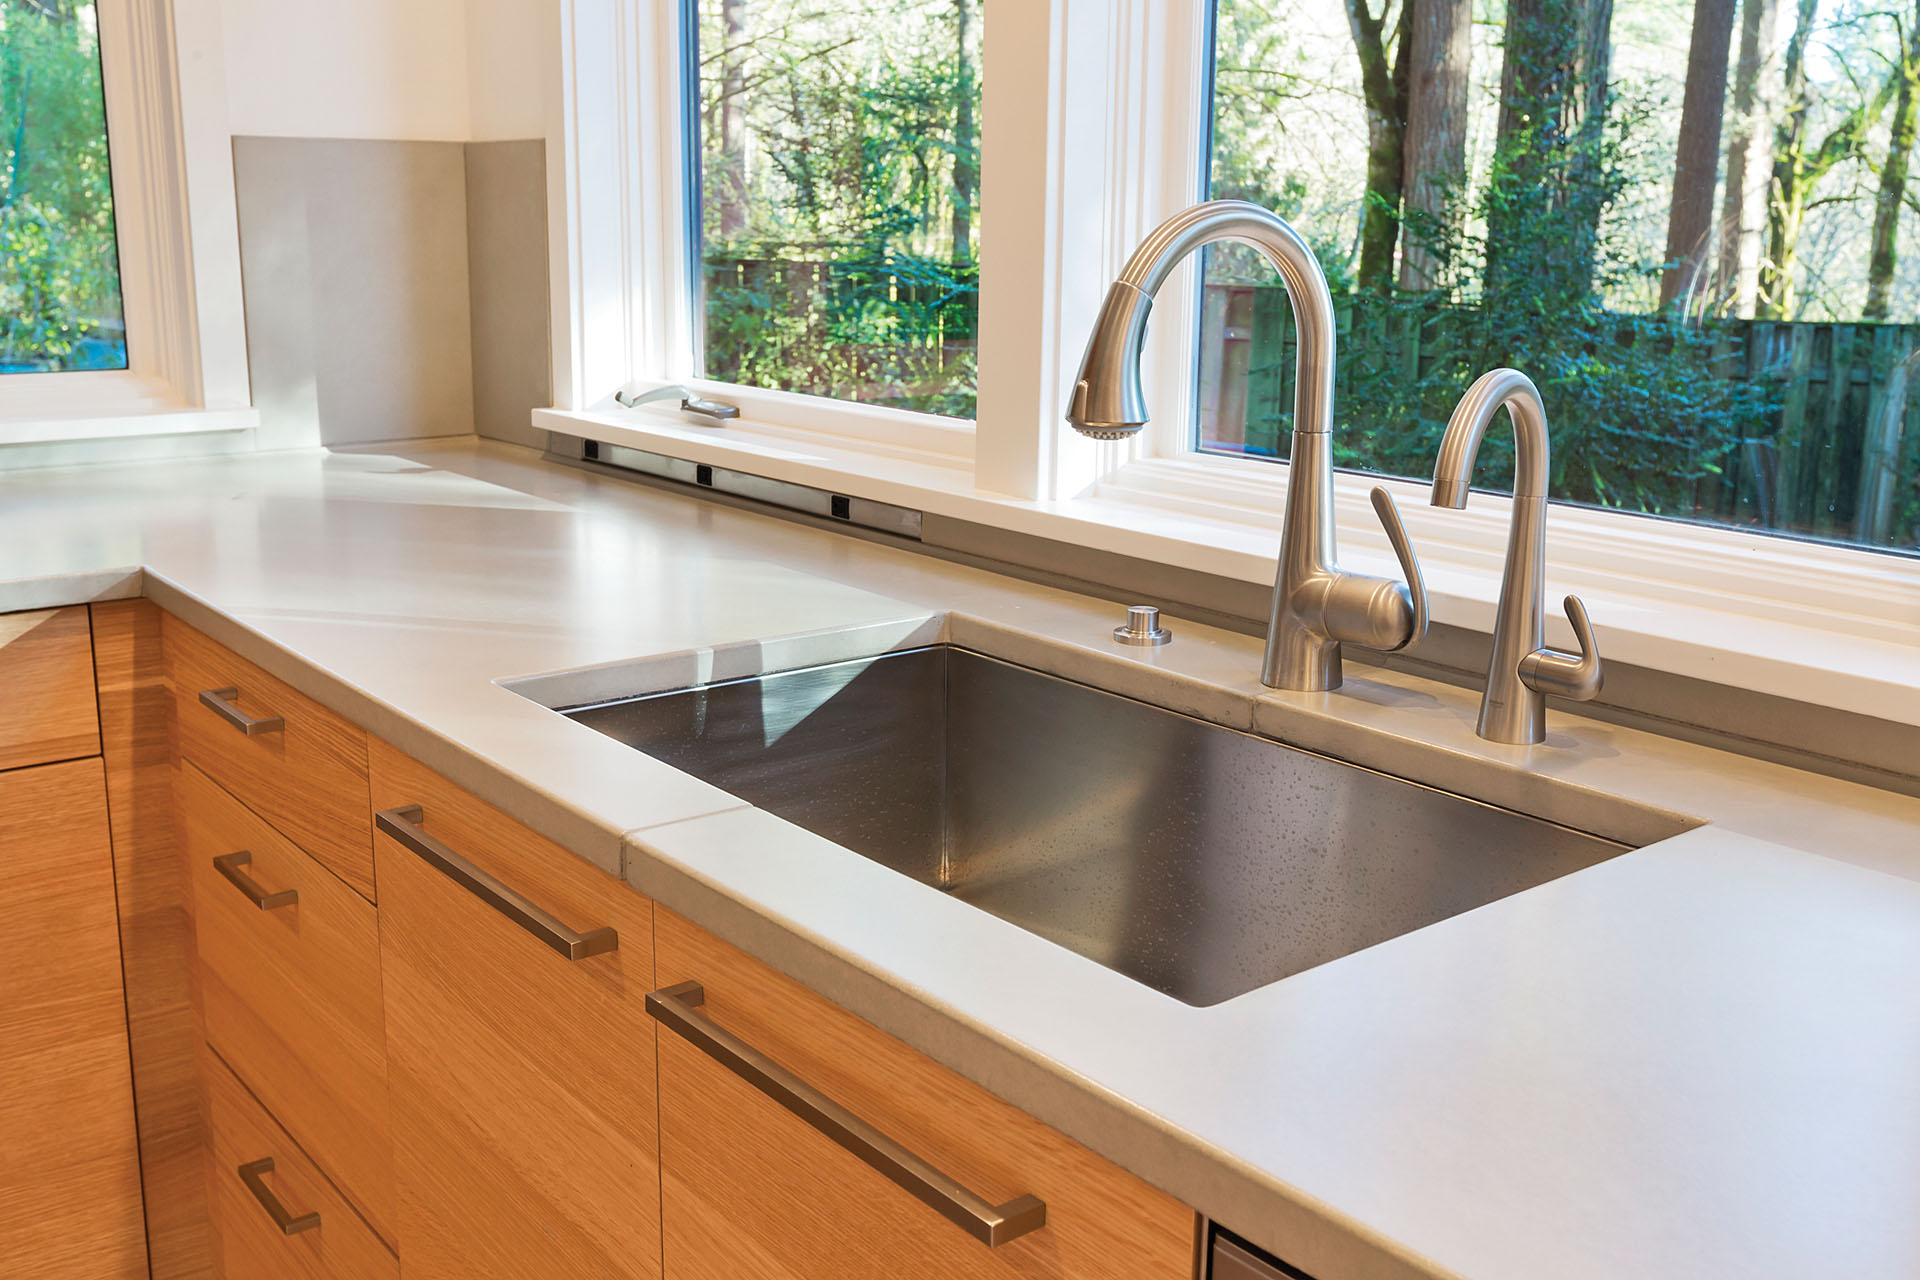 Can You Use Undermount Sink With Laminate Countertops How To Choose The Right Sink And Faucet For Your Kitchen